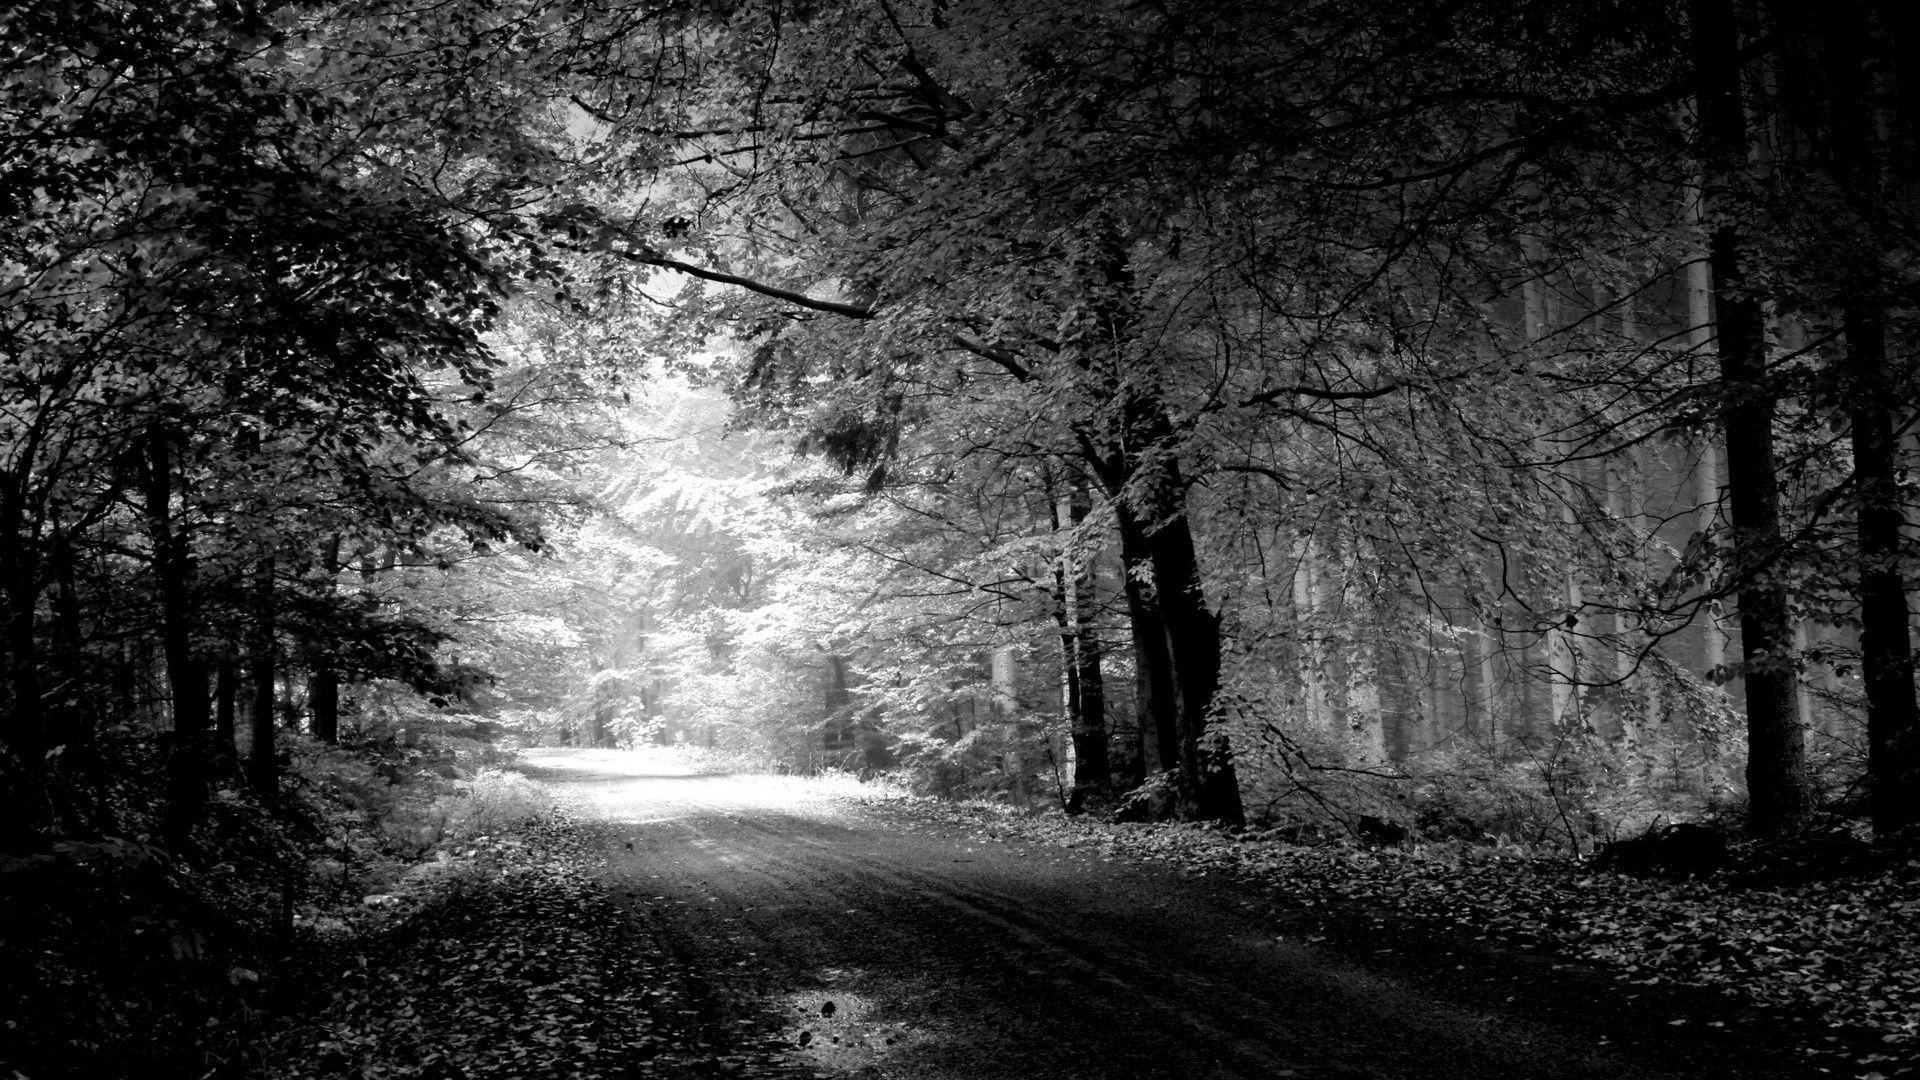 Anime Black And White Scenery Hd Wallpapers Wallpaper Cave